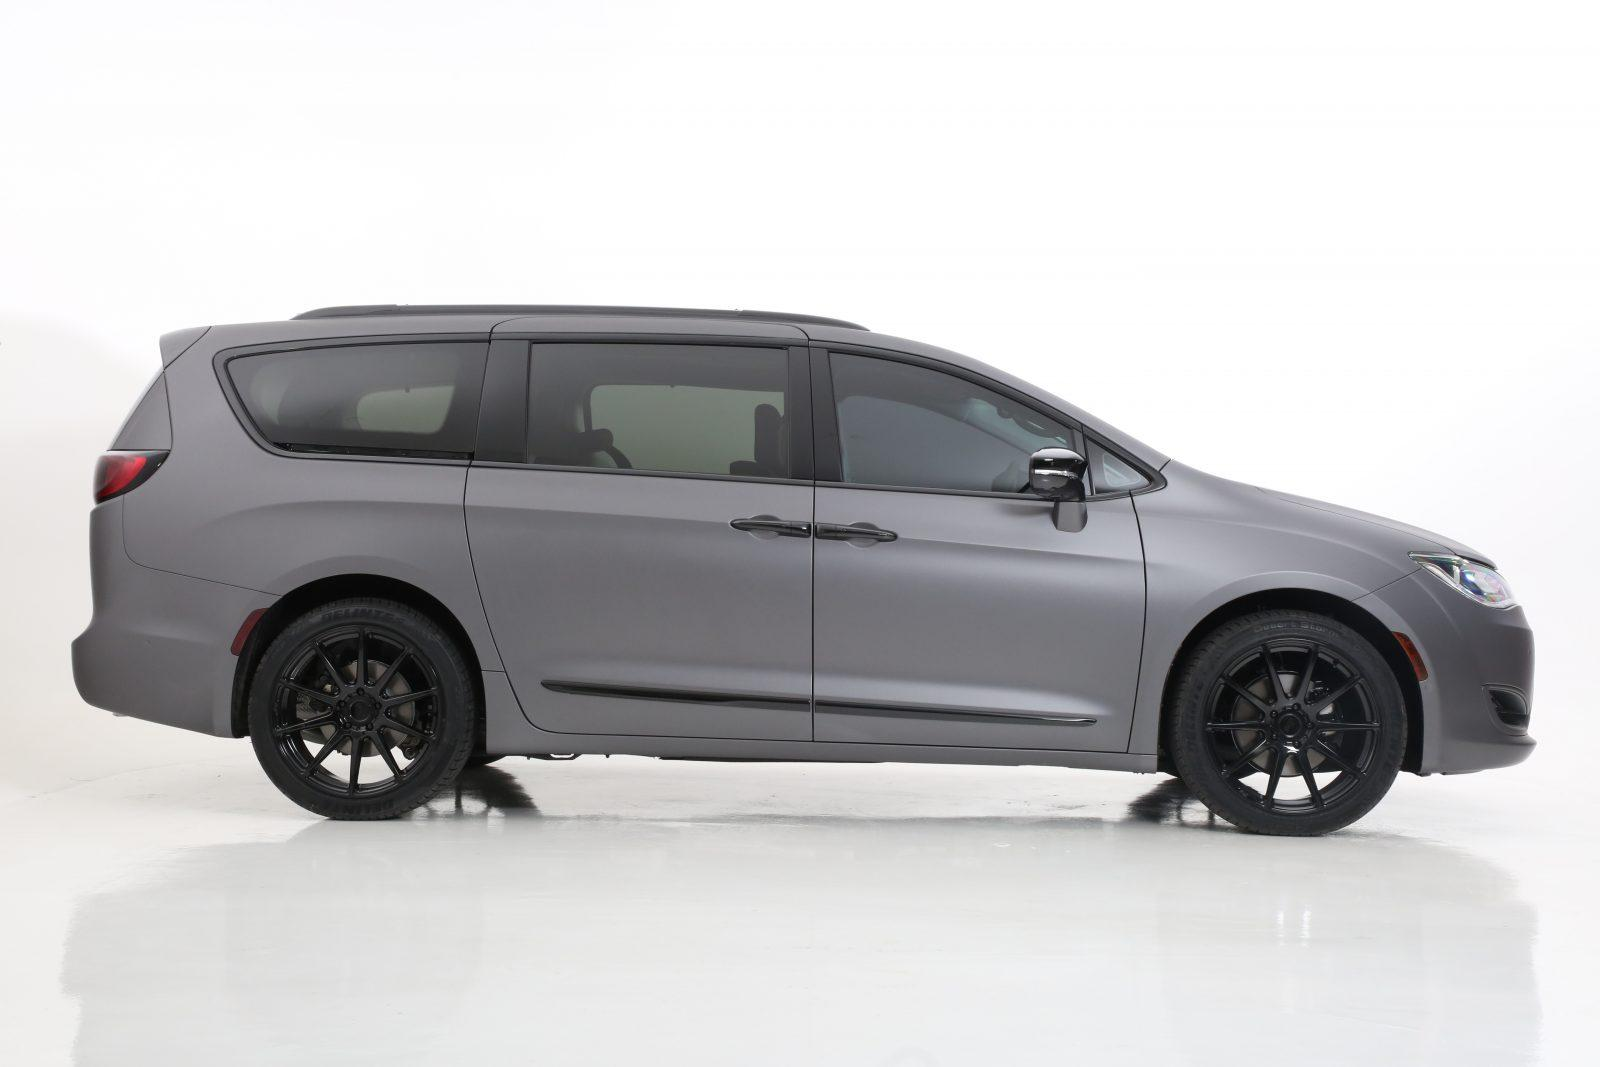 2018 Chrysler Pacifica Minivan Blackout Package By All Star Motorsports